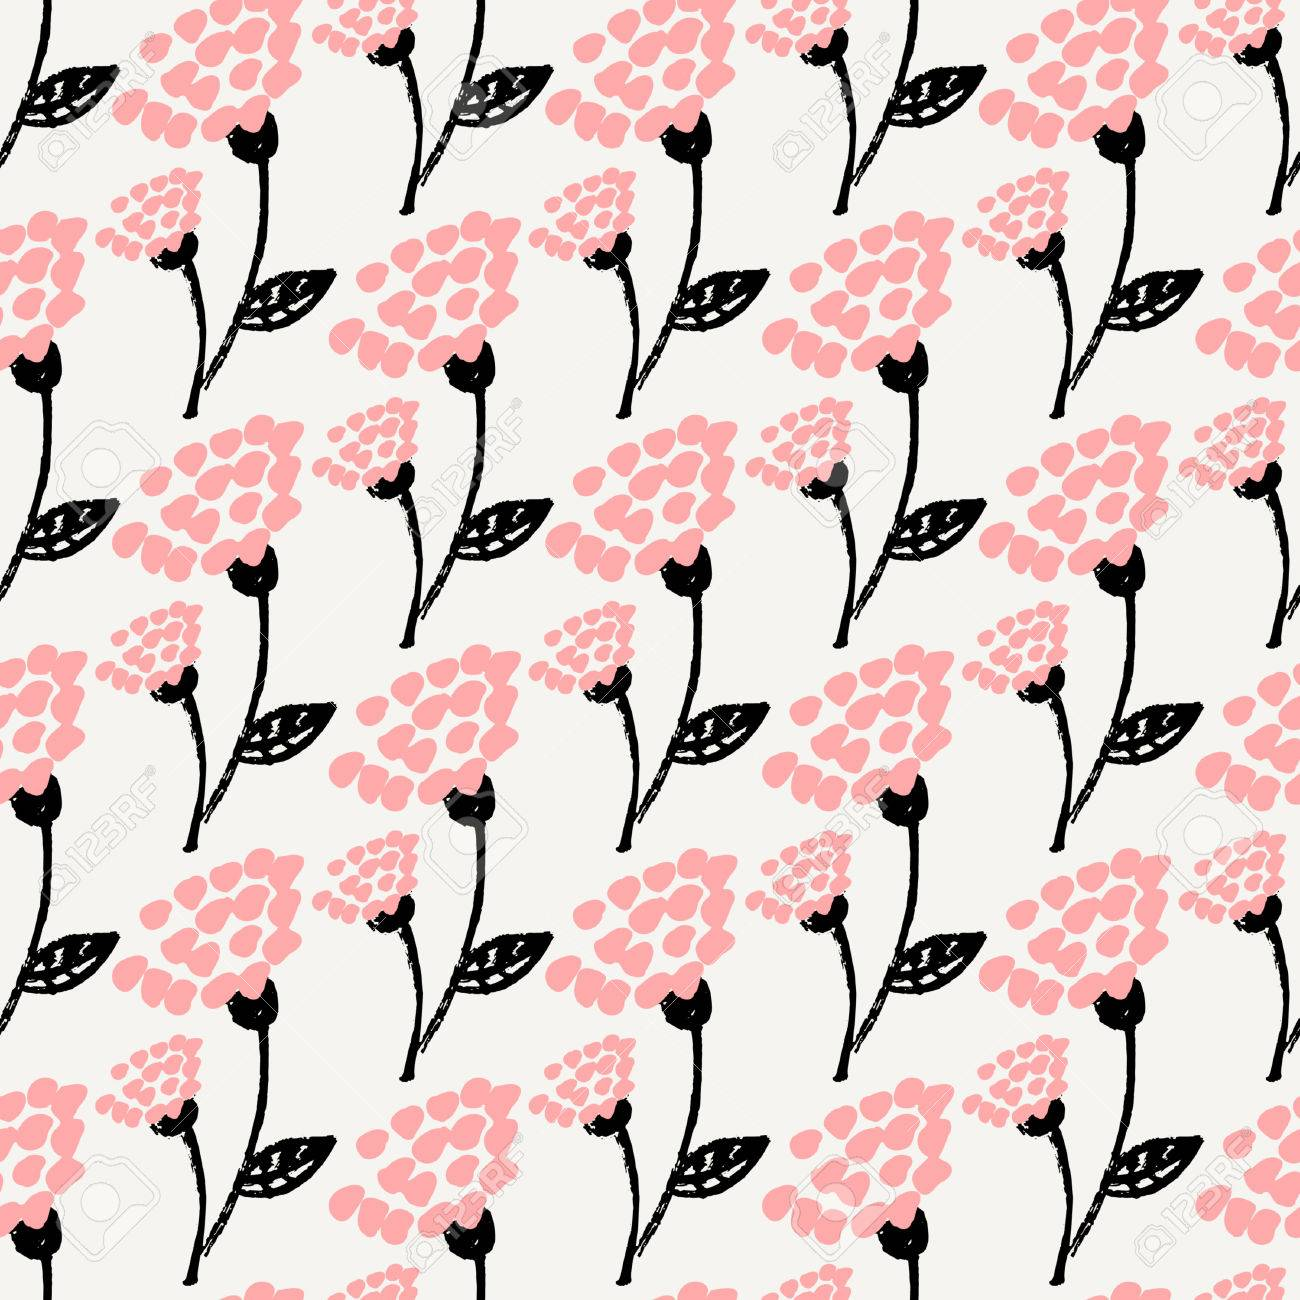 Seamless Repeat Flowers Pattern In Black Pastel Pink And Cream